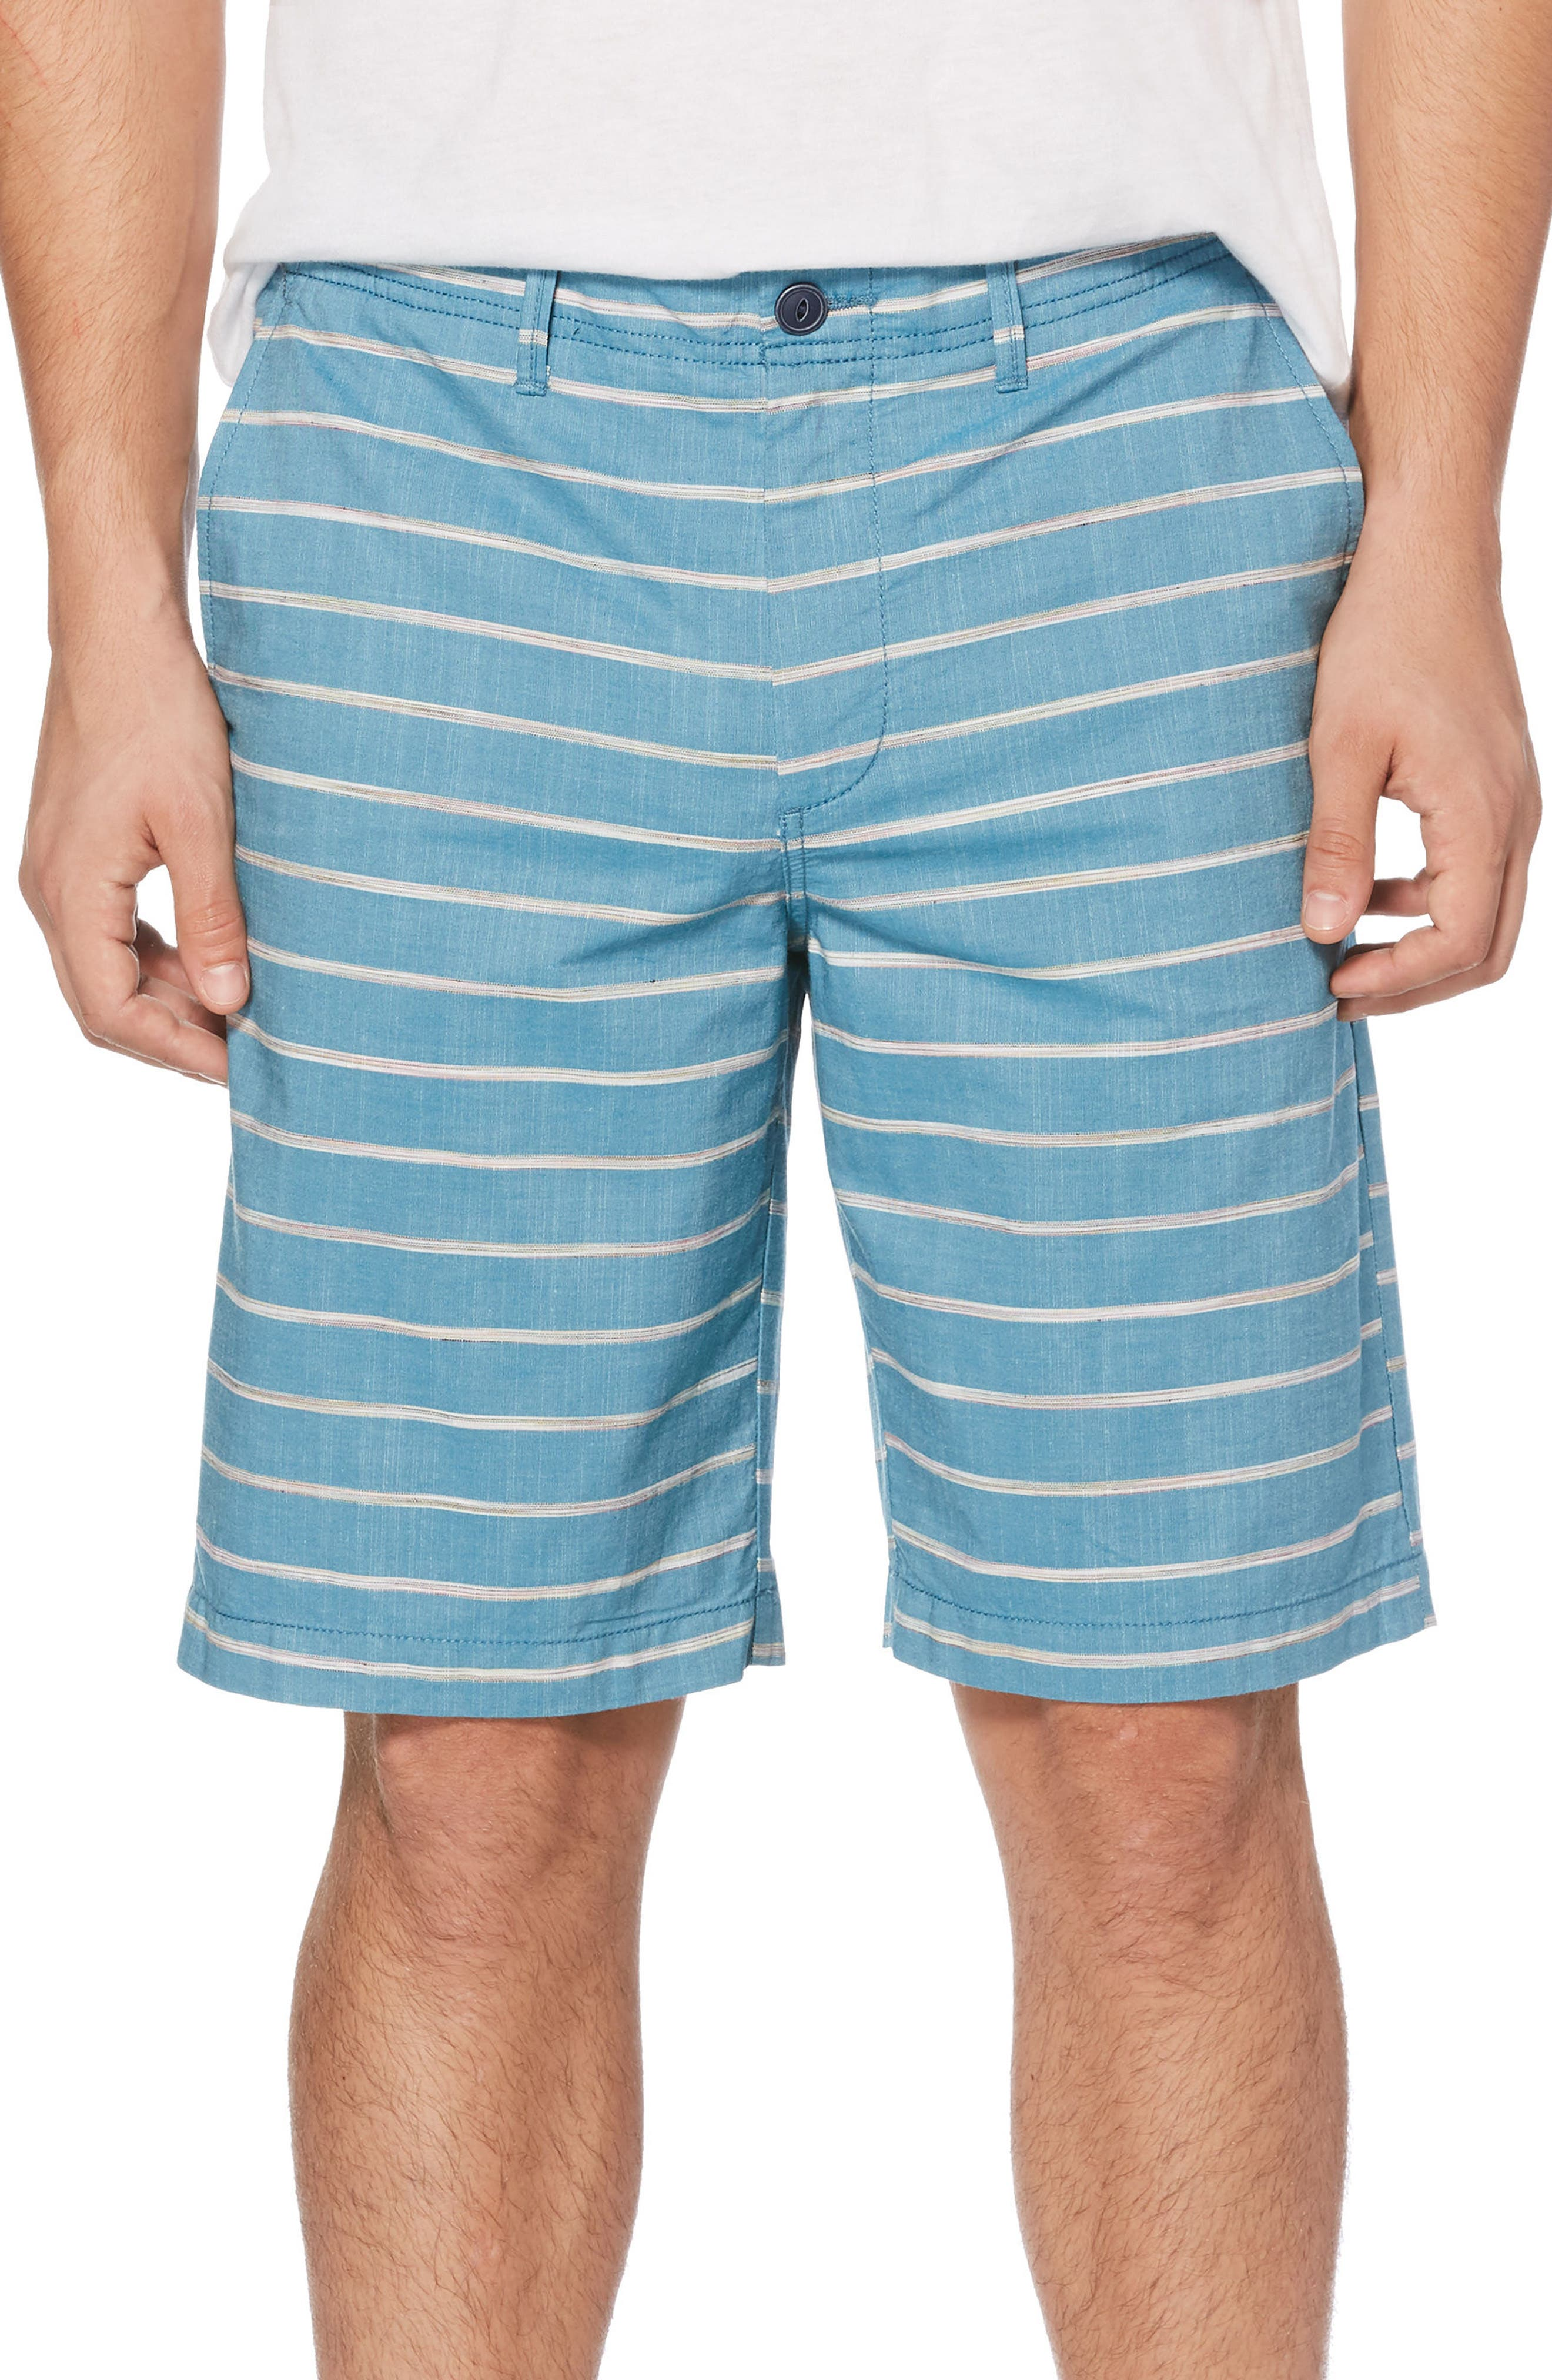 P55 Stripe Shorts,                             Main thumbnail 1, color,                             413